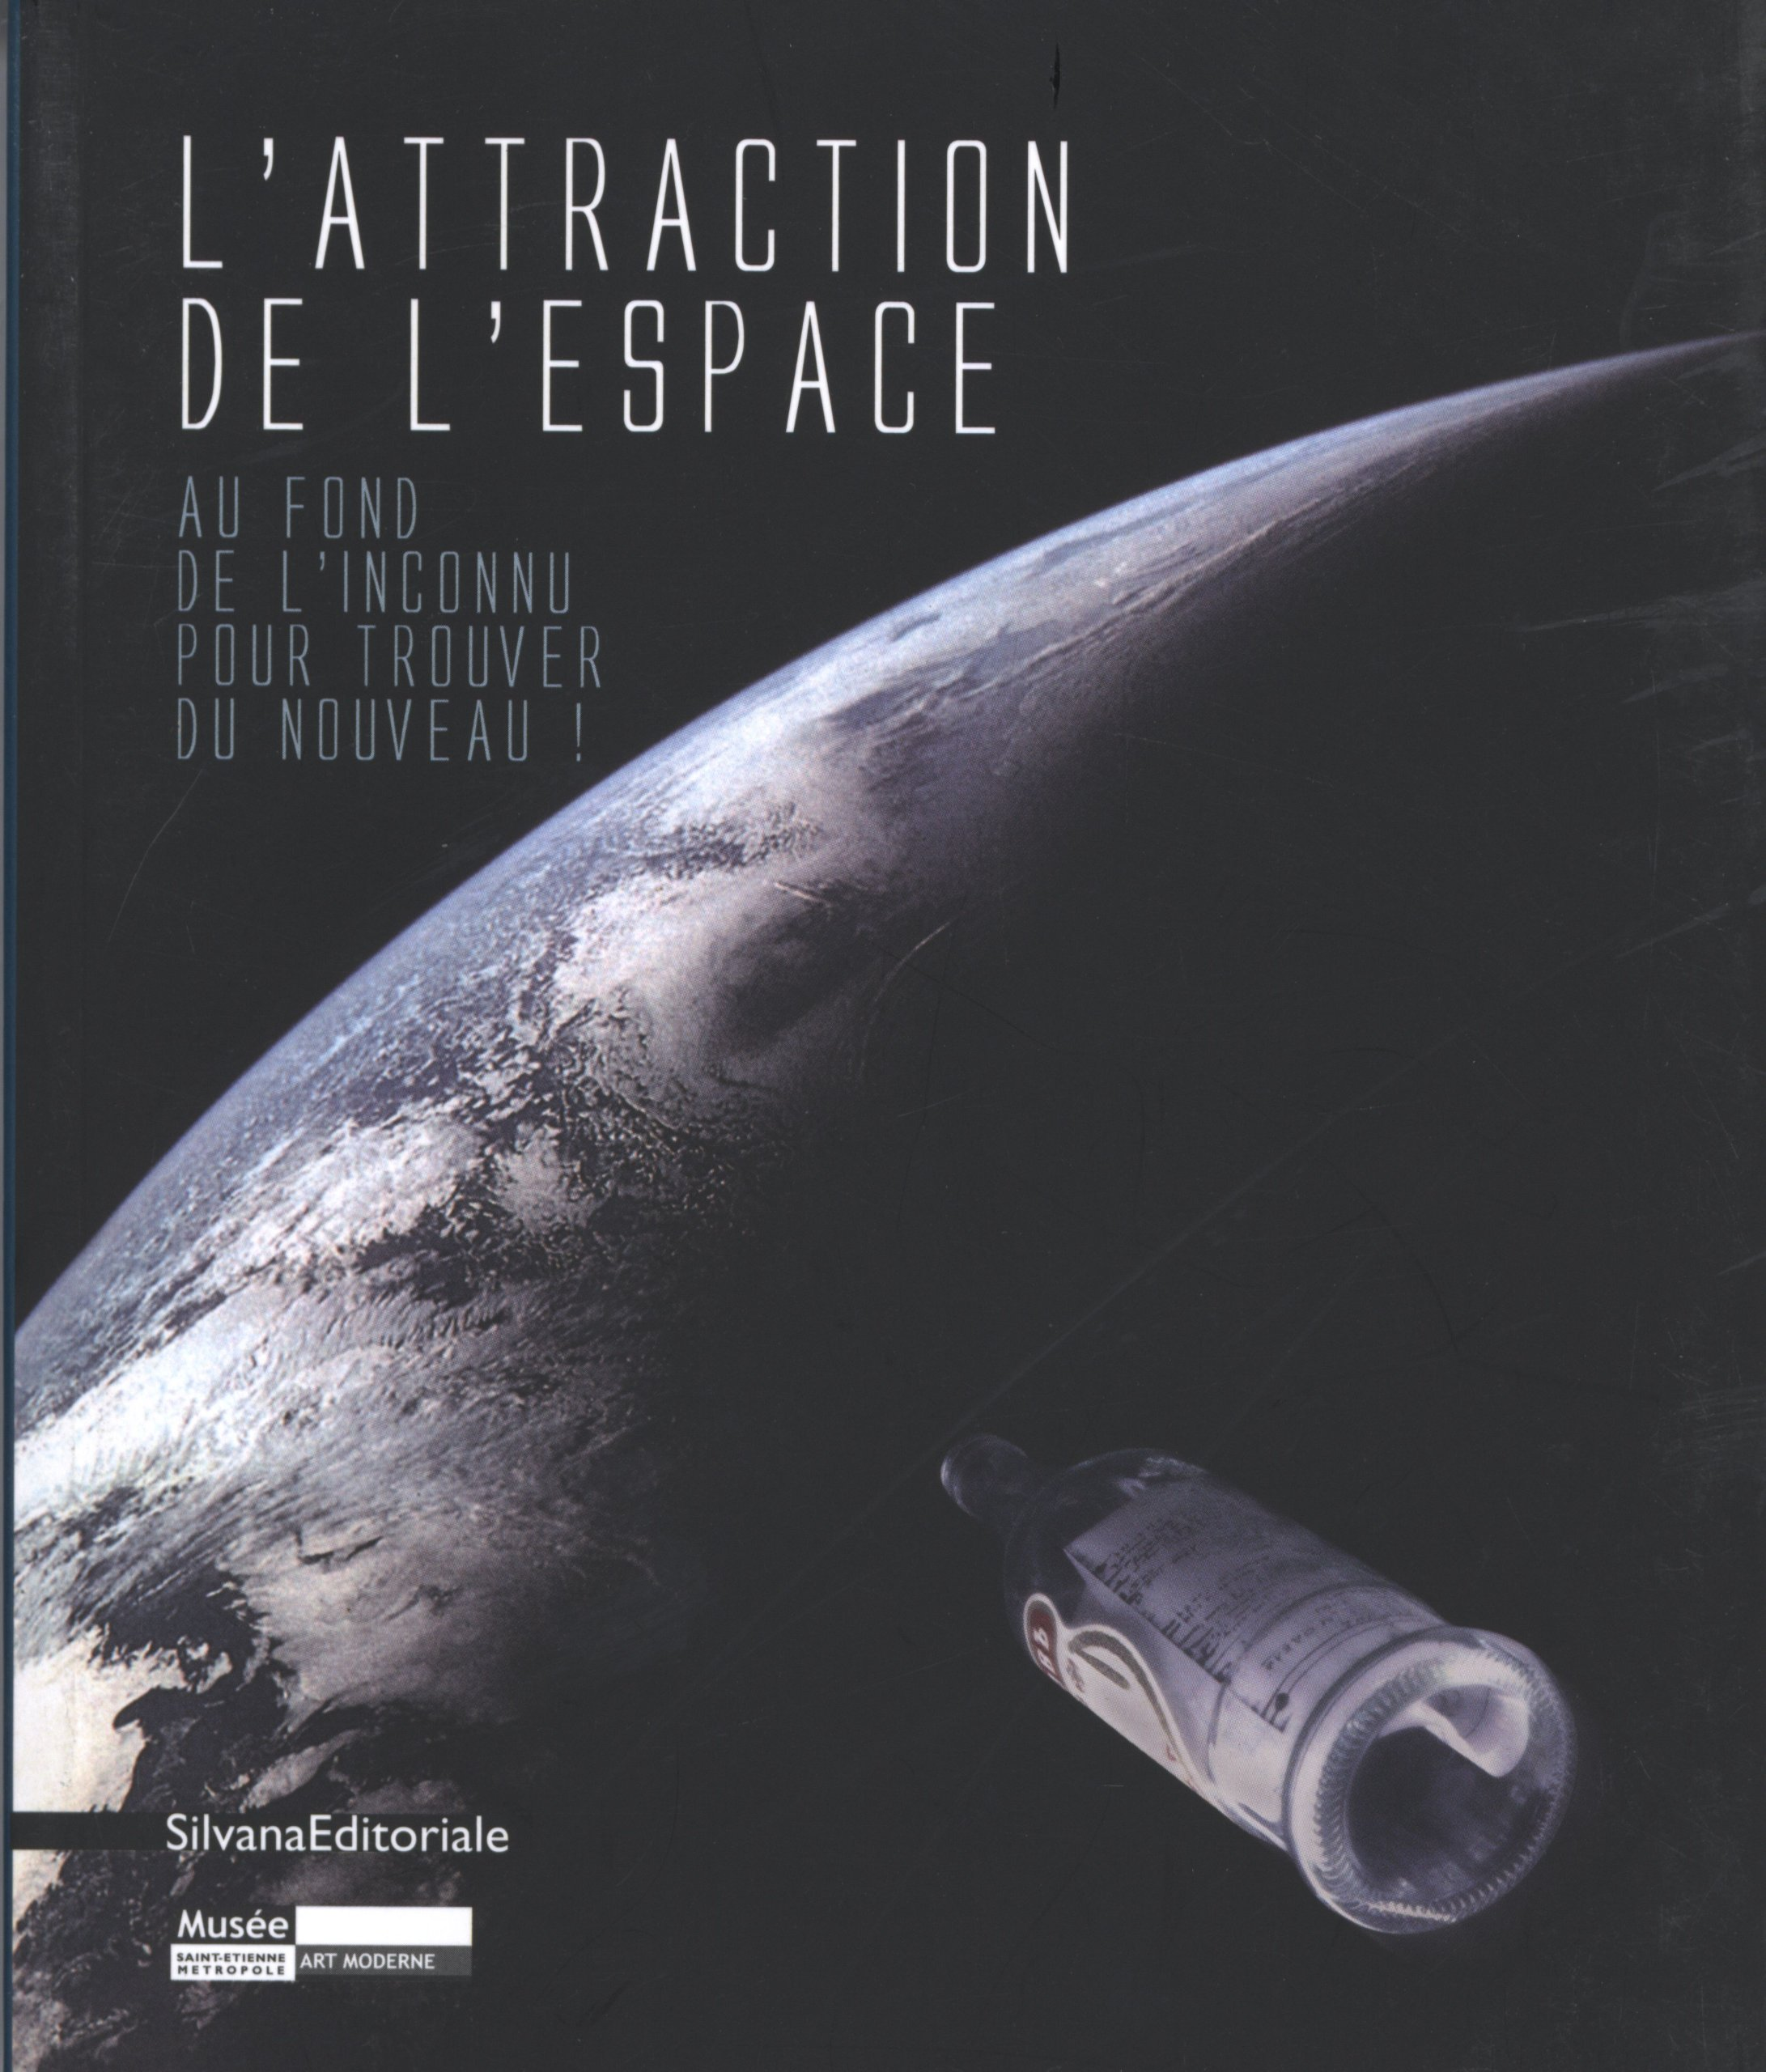 The Attraction of Space: To the Depths of the Unknown to Find the New (English and French Edition) pdf